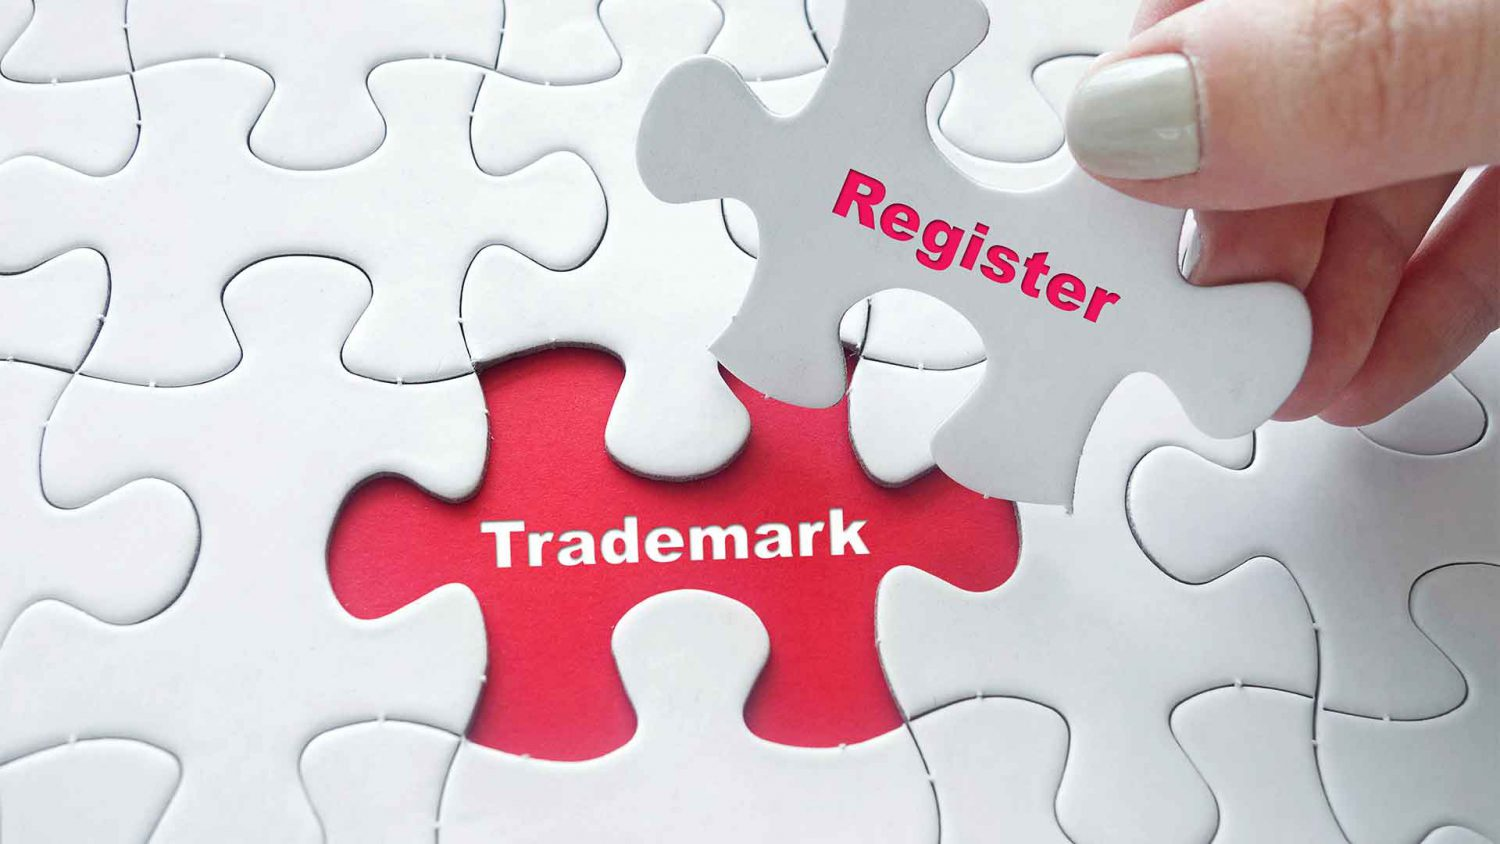 Trademark Registration Renewal Application | Corpstore